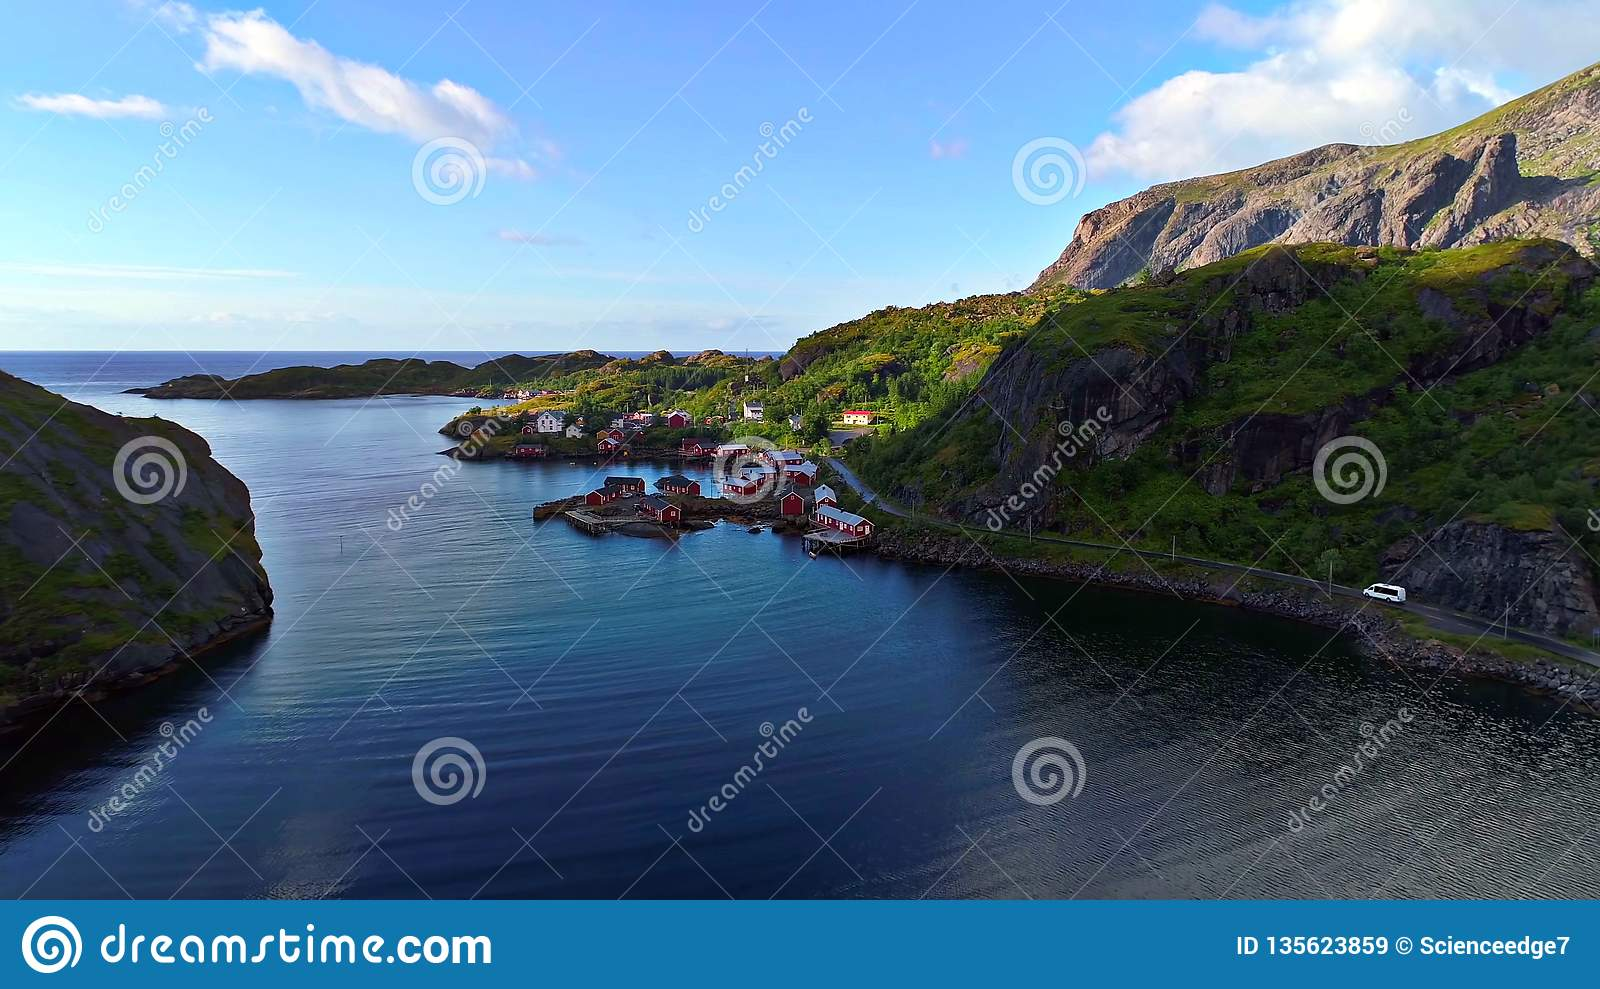 Lofoten islands is an archipelago in the county of Nordland, Norway